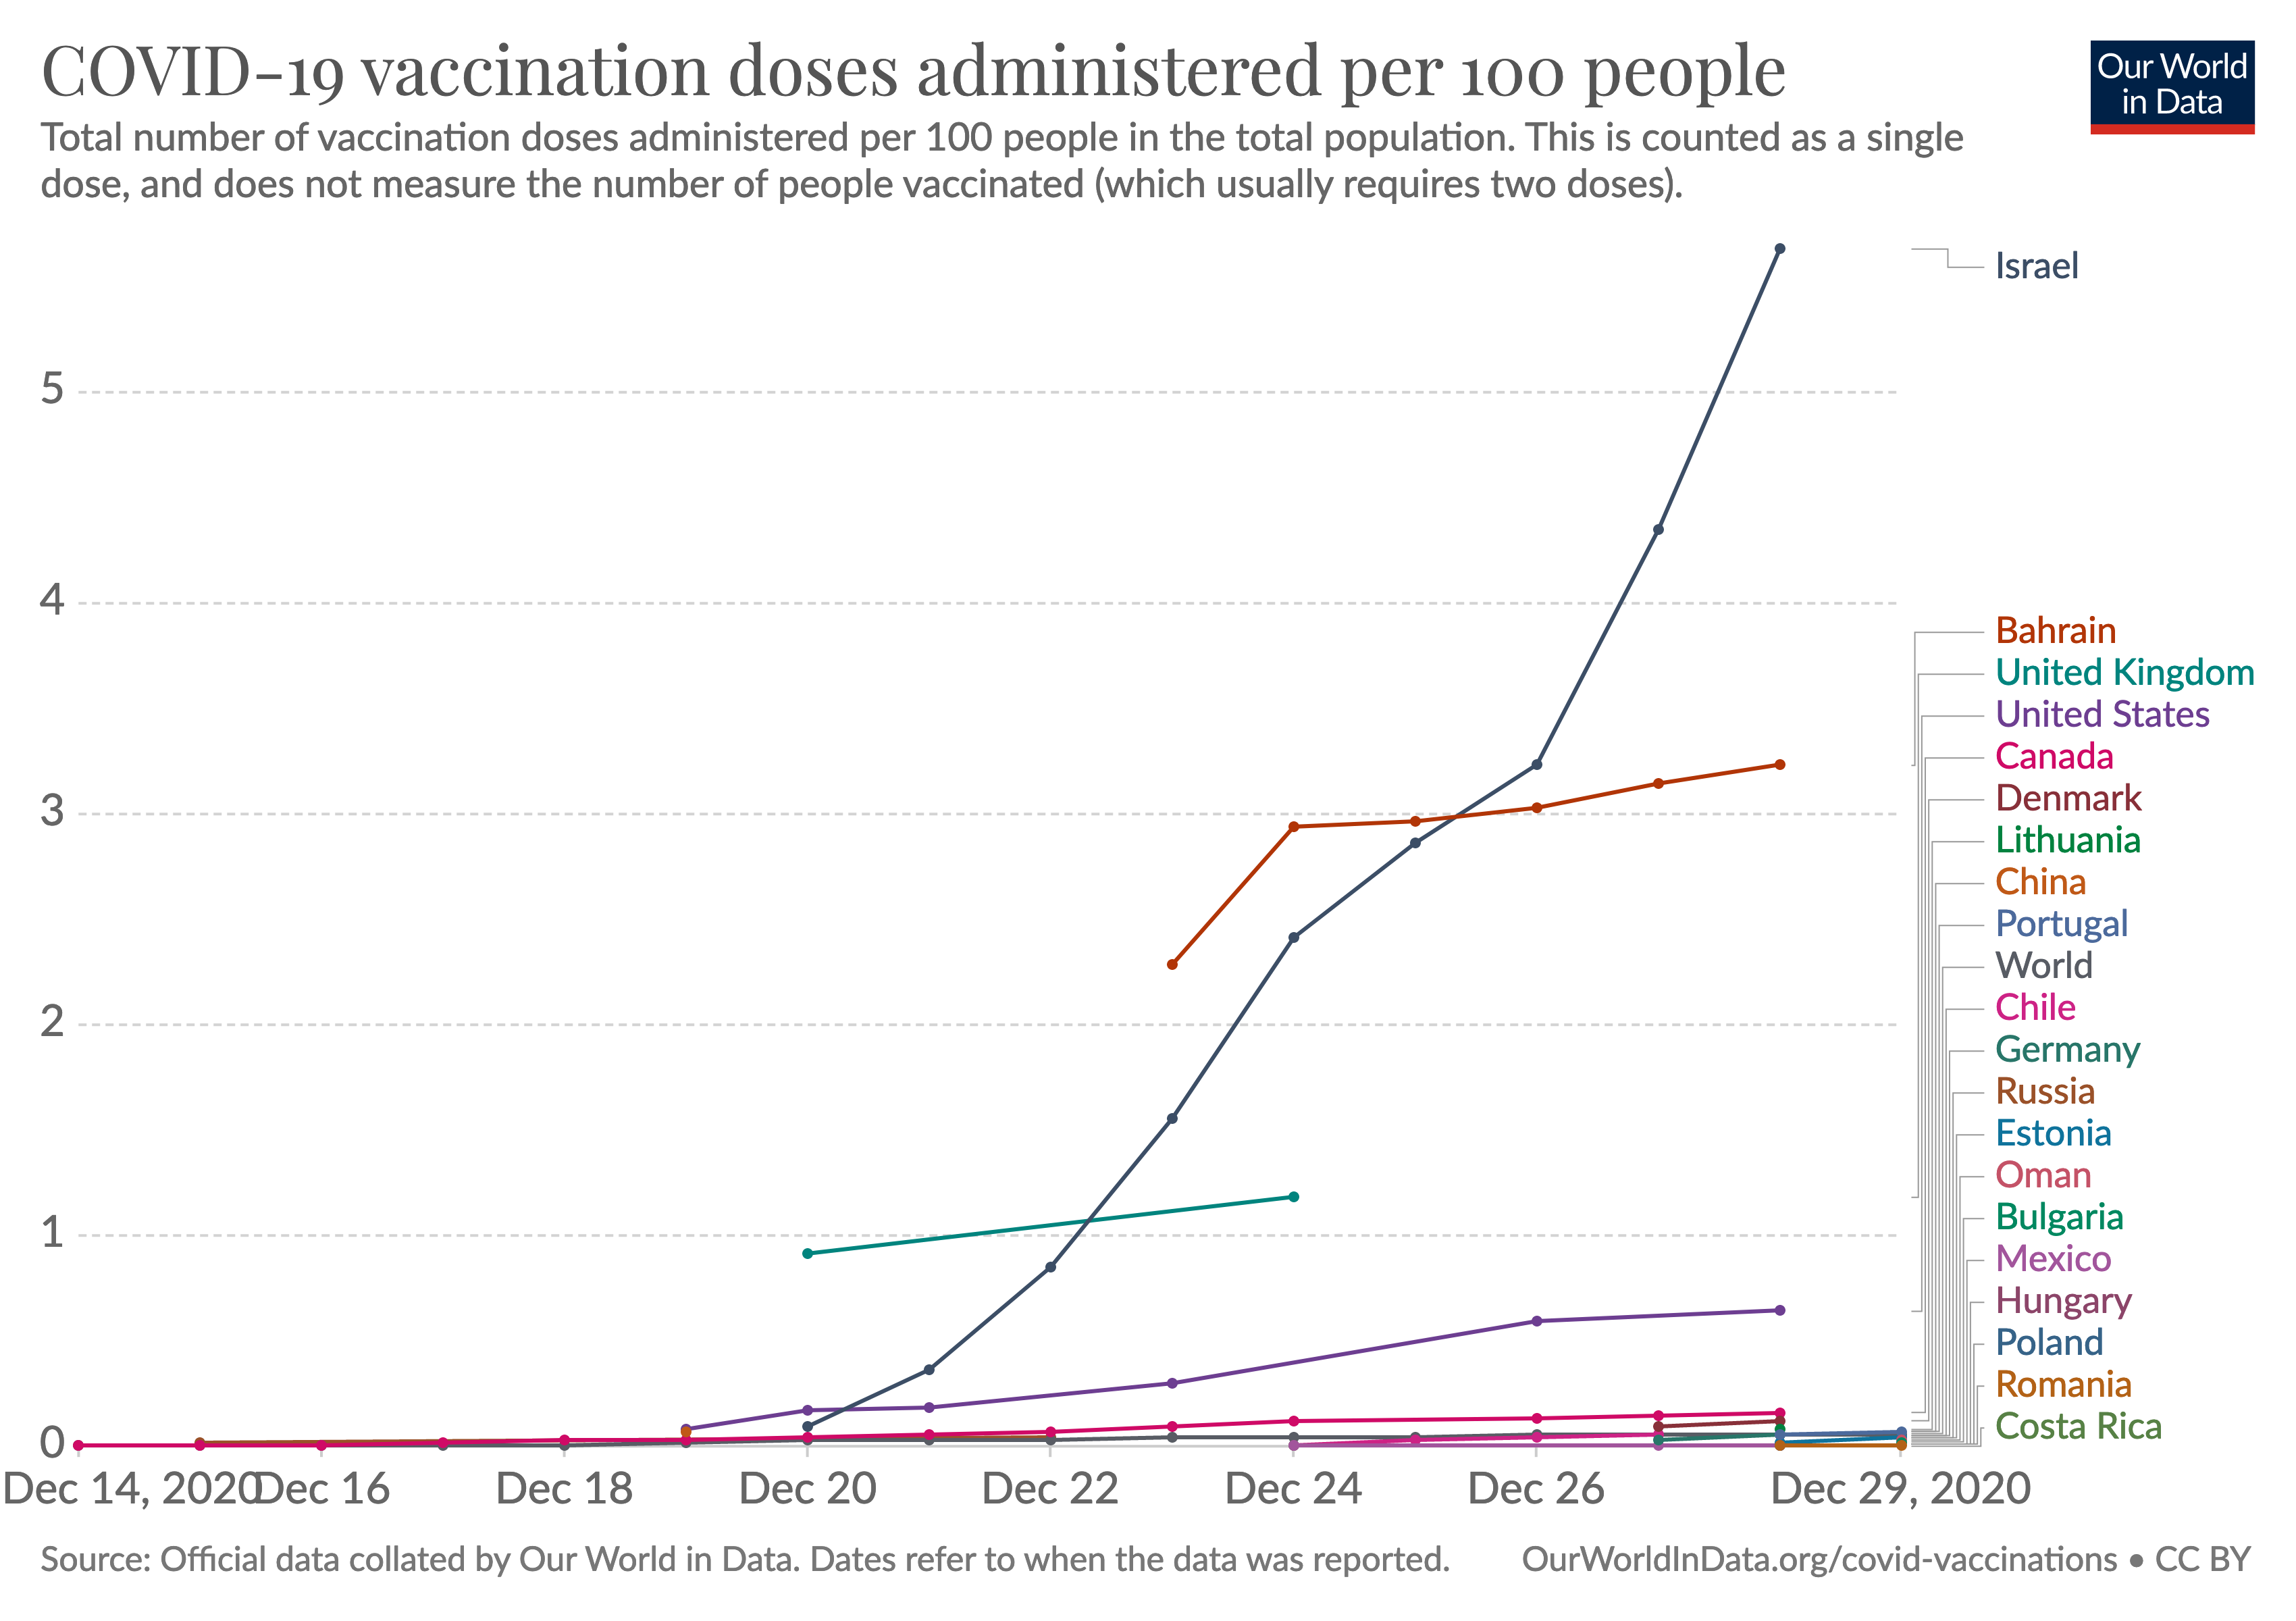 vaccine administered